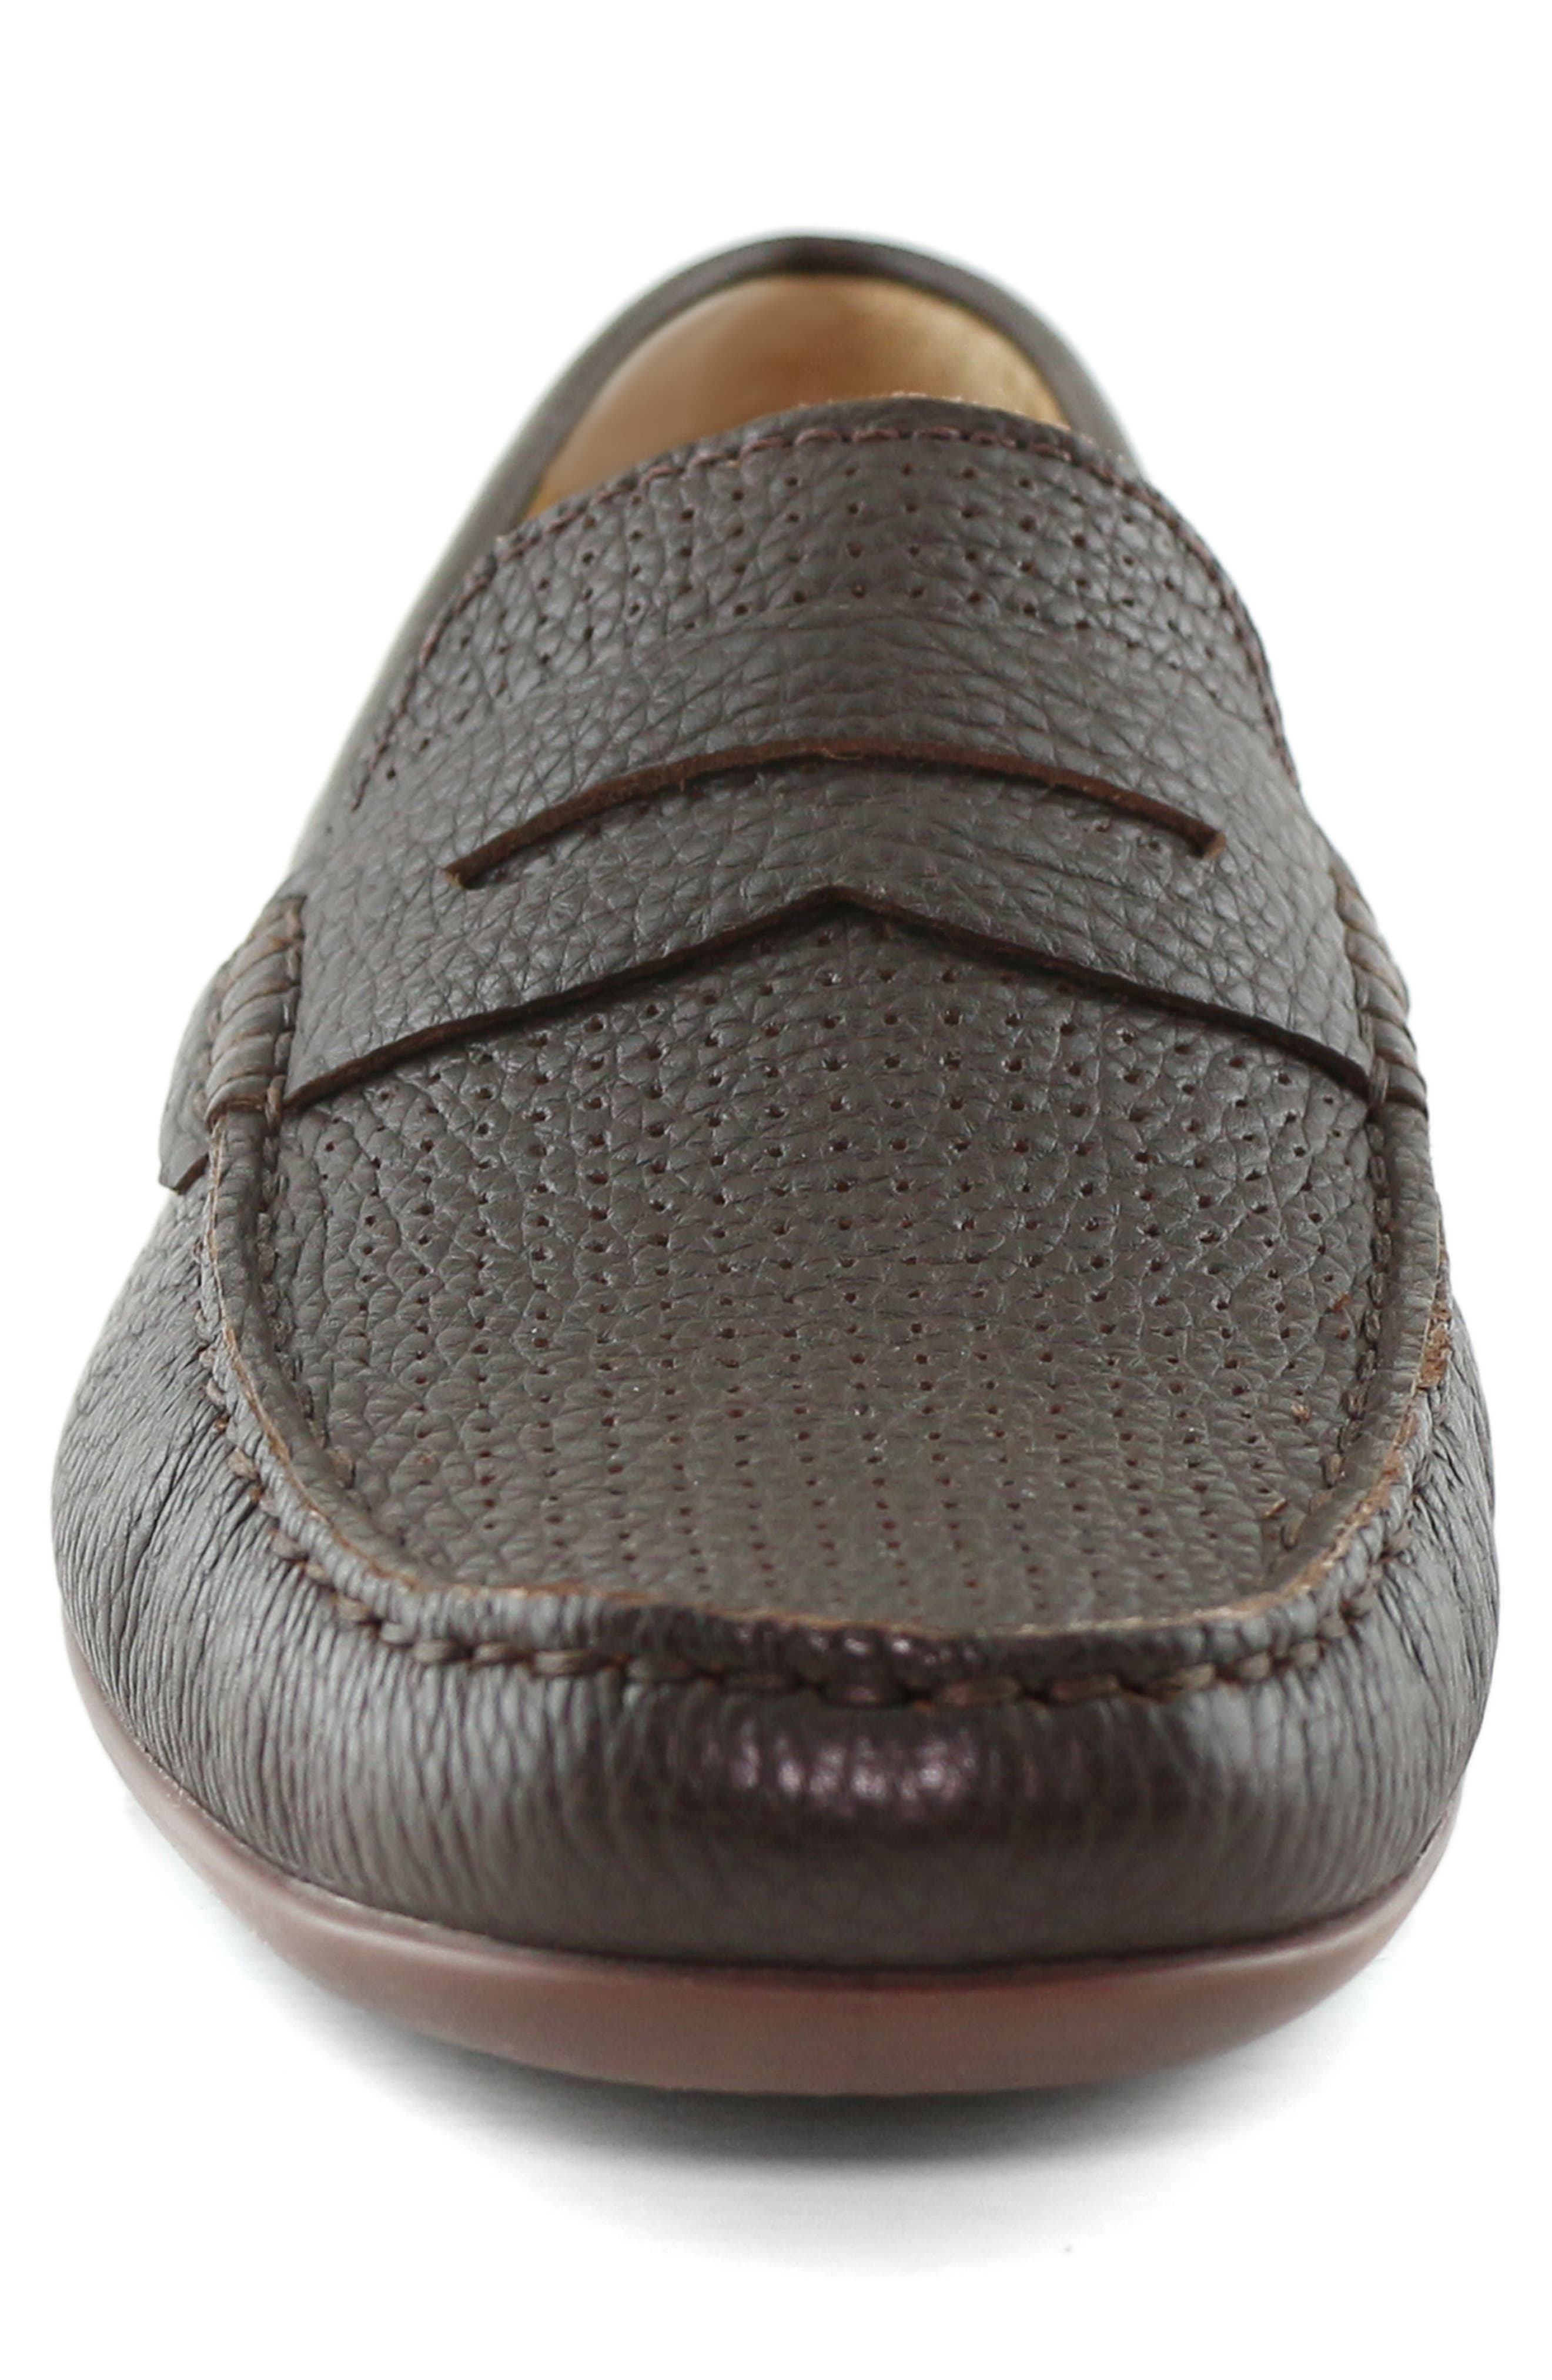 MARC JOSEPH NEW YORK, 'Union Street' Penny Loafer, Alternate thumbnail 4, color, BROWN GRAINY LEATHER